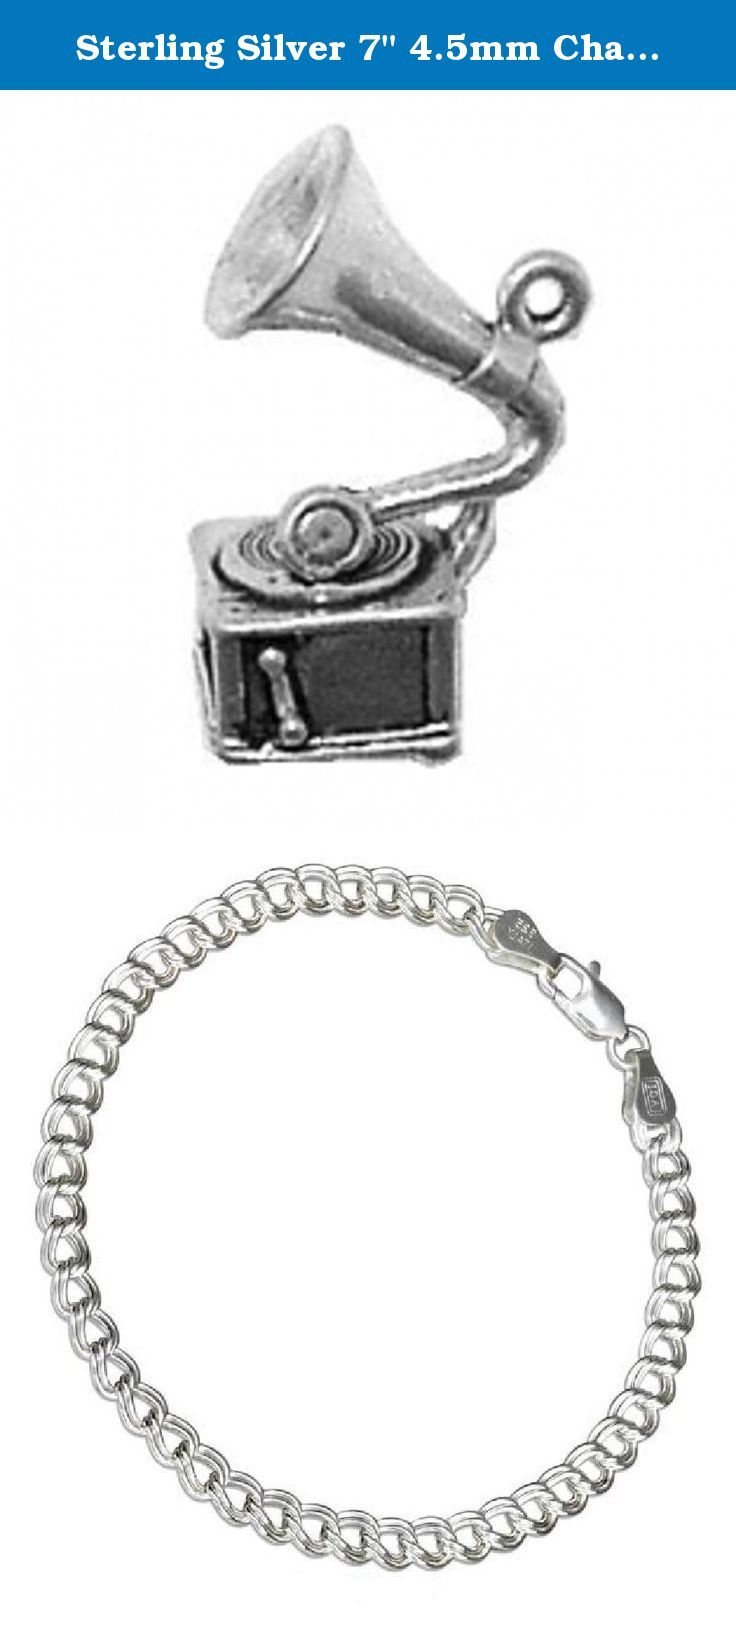 """Sterling Silver 7"""" 4.5mm Charm Bracelet With Attached 3D Old Vintage Fashion Phonograph Record Player Charm. Sterling Silver 7"""" 4.5mm Italian Made Charm Bracelet With Attached 3D Old Vintage Fashion Phonograph Record Player Charm. Great Charm For Anyone Who Collects Antiques Or Who Old Record Players. Material: .925 Sterling Silver Dimensions: 3D Hollow Bottom Charm Height: 8/8"""" Length: 5/8"""" Width (Thickness): 3/8"""" Units Sold By: Single SKU#: A37888T-BR452 Charm Made In: United States All..."""